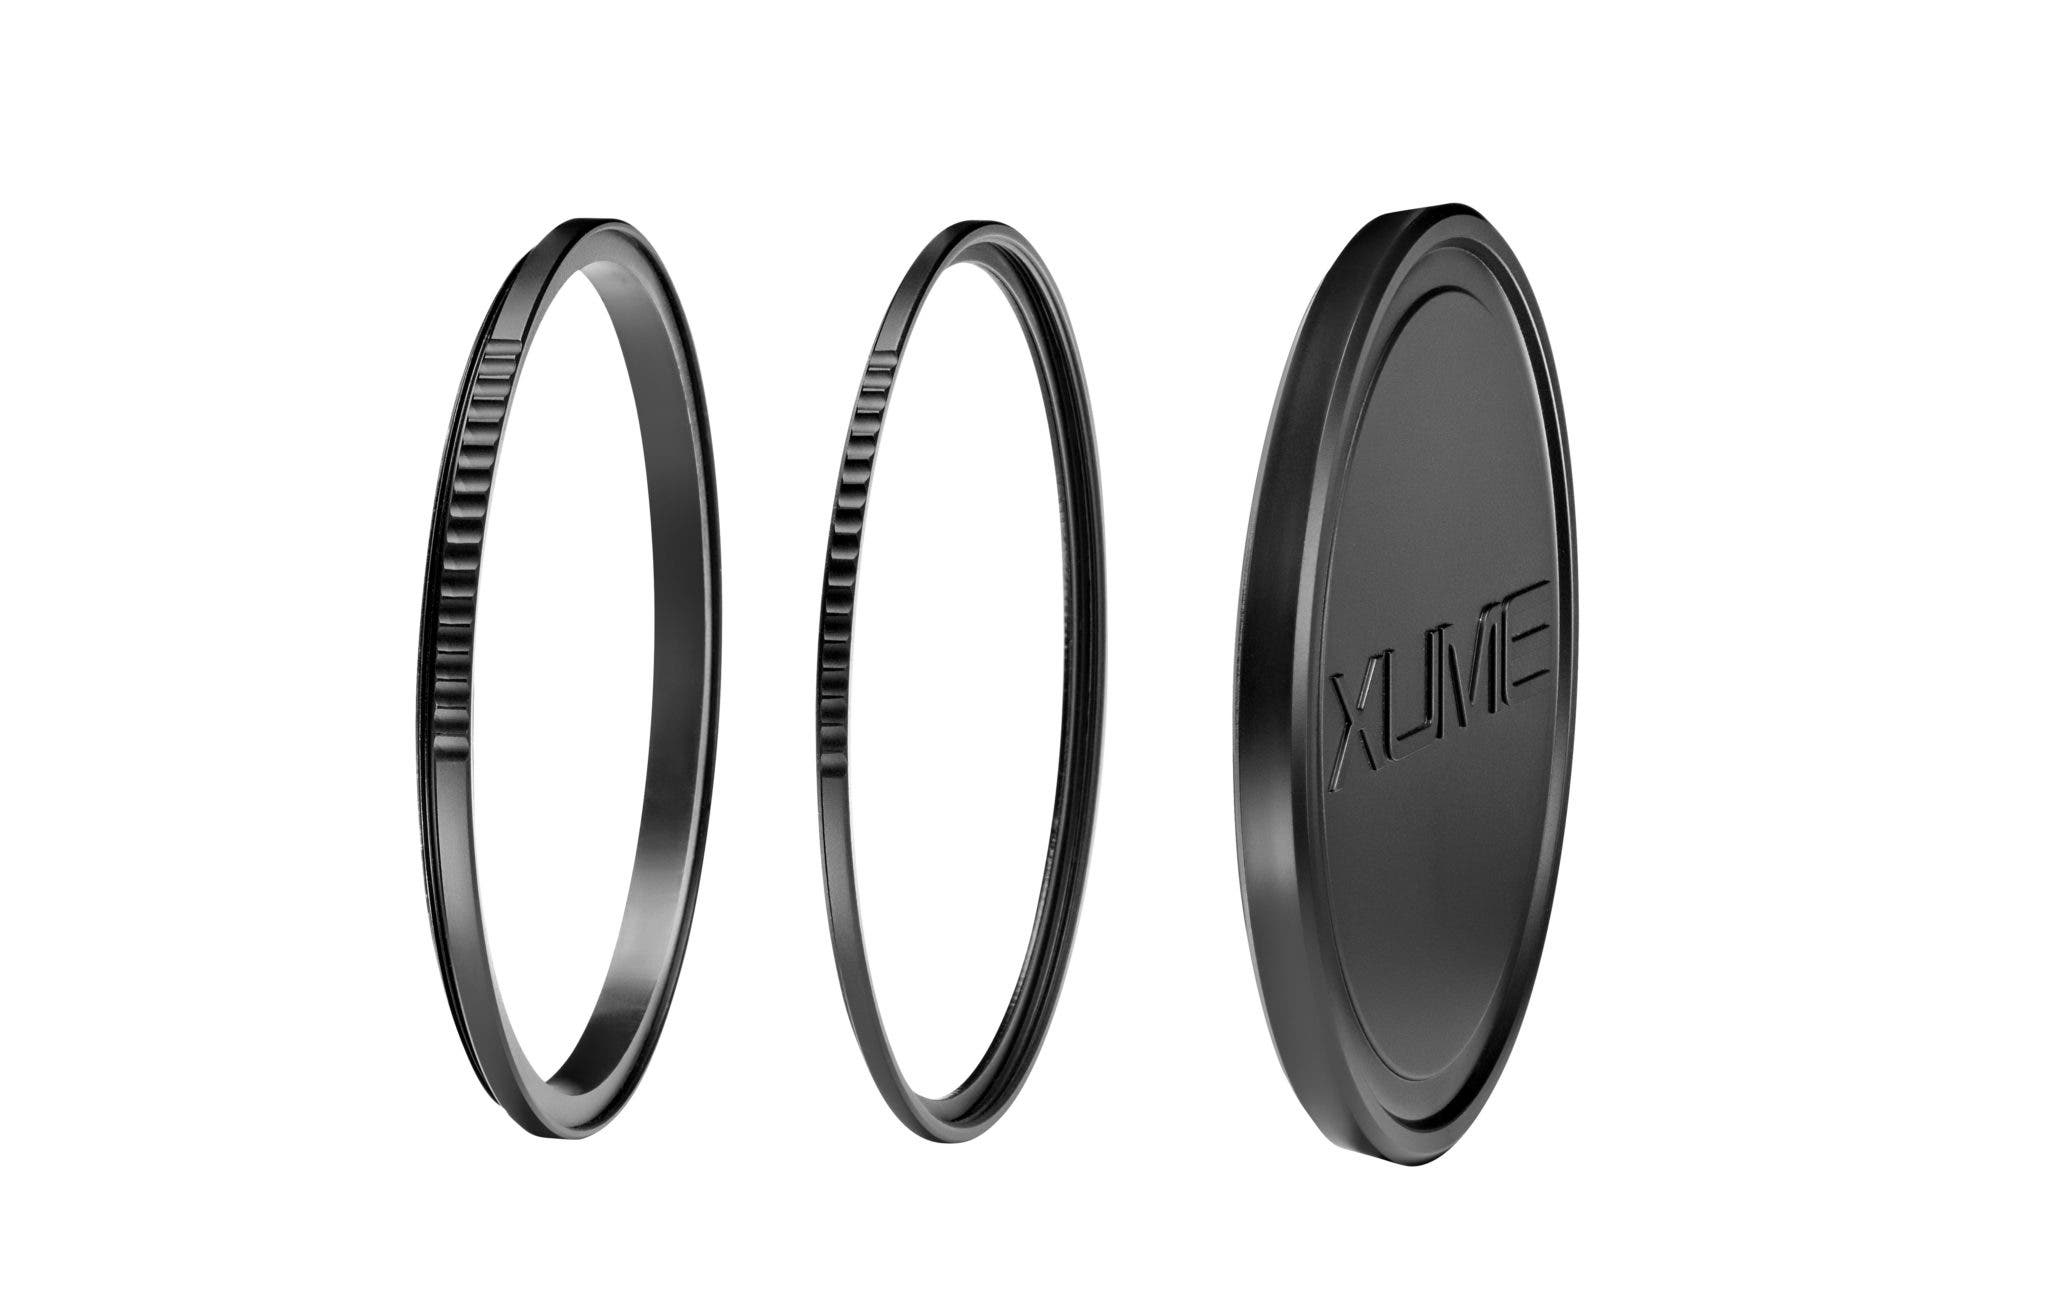 Manfrotto Announces New Lens Filter Suite at WPPI